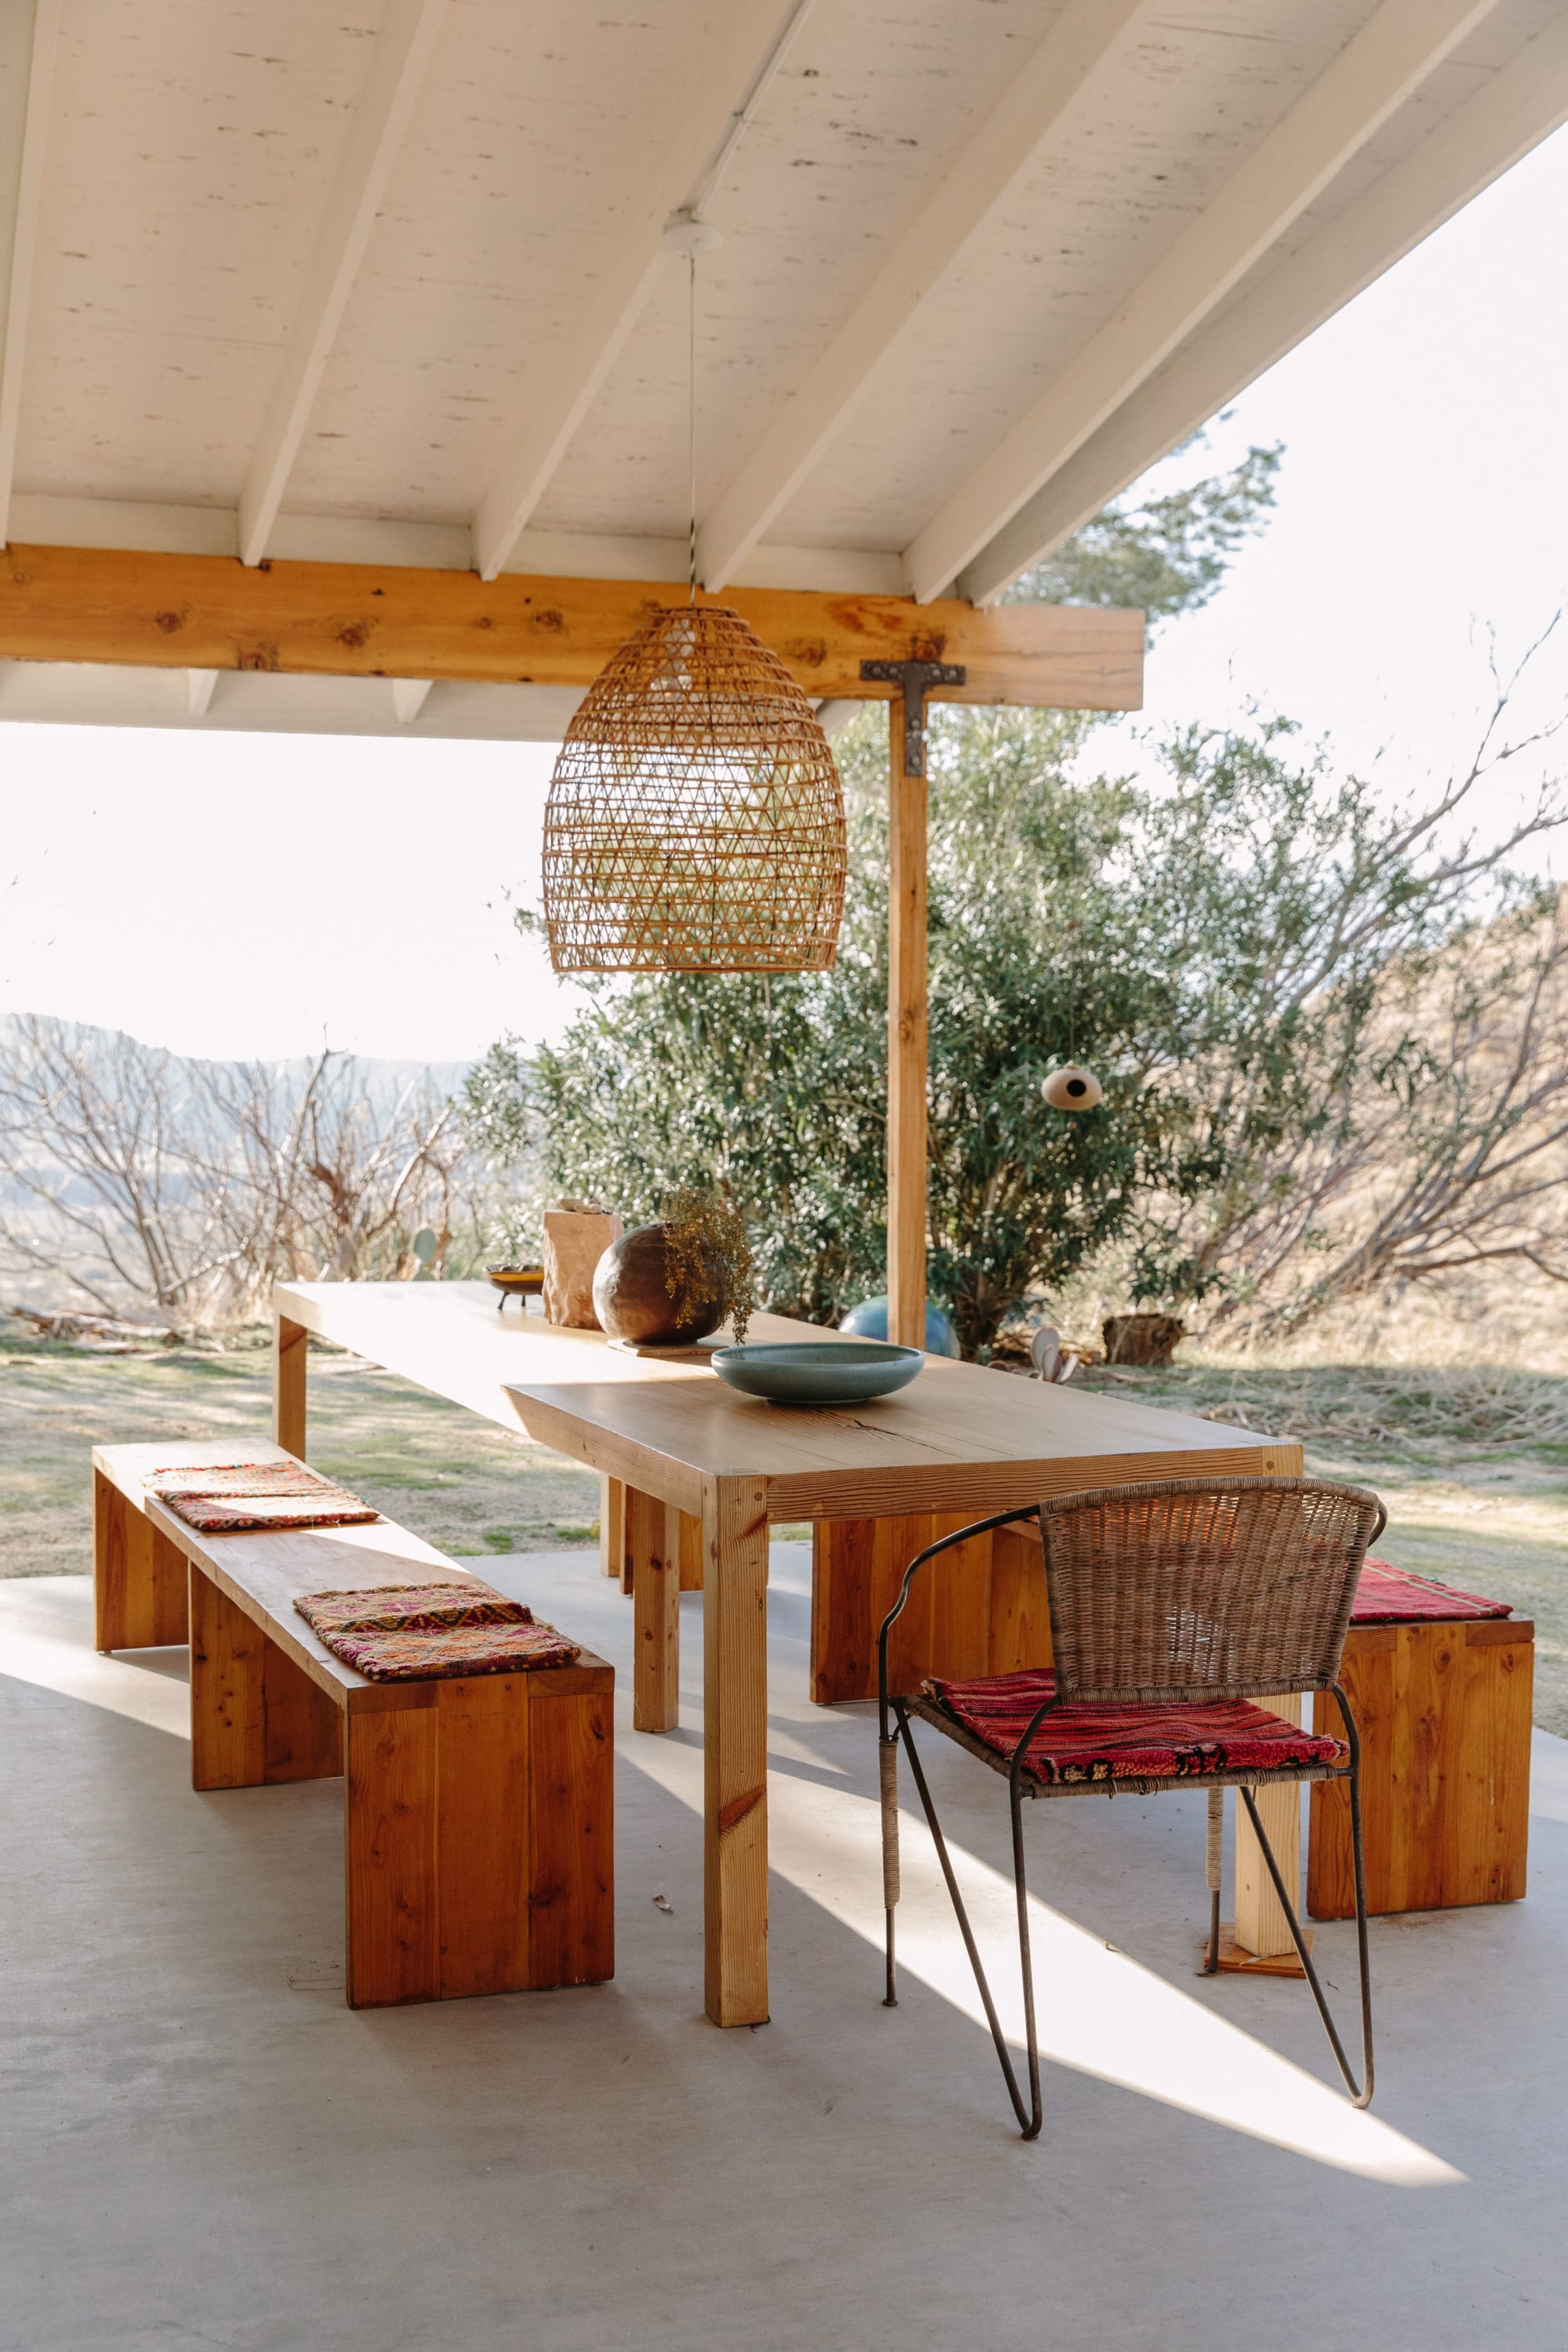 Outdoor wooden dining table and benches